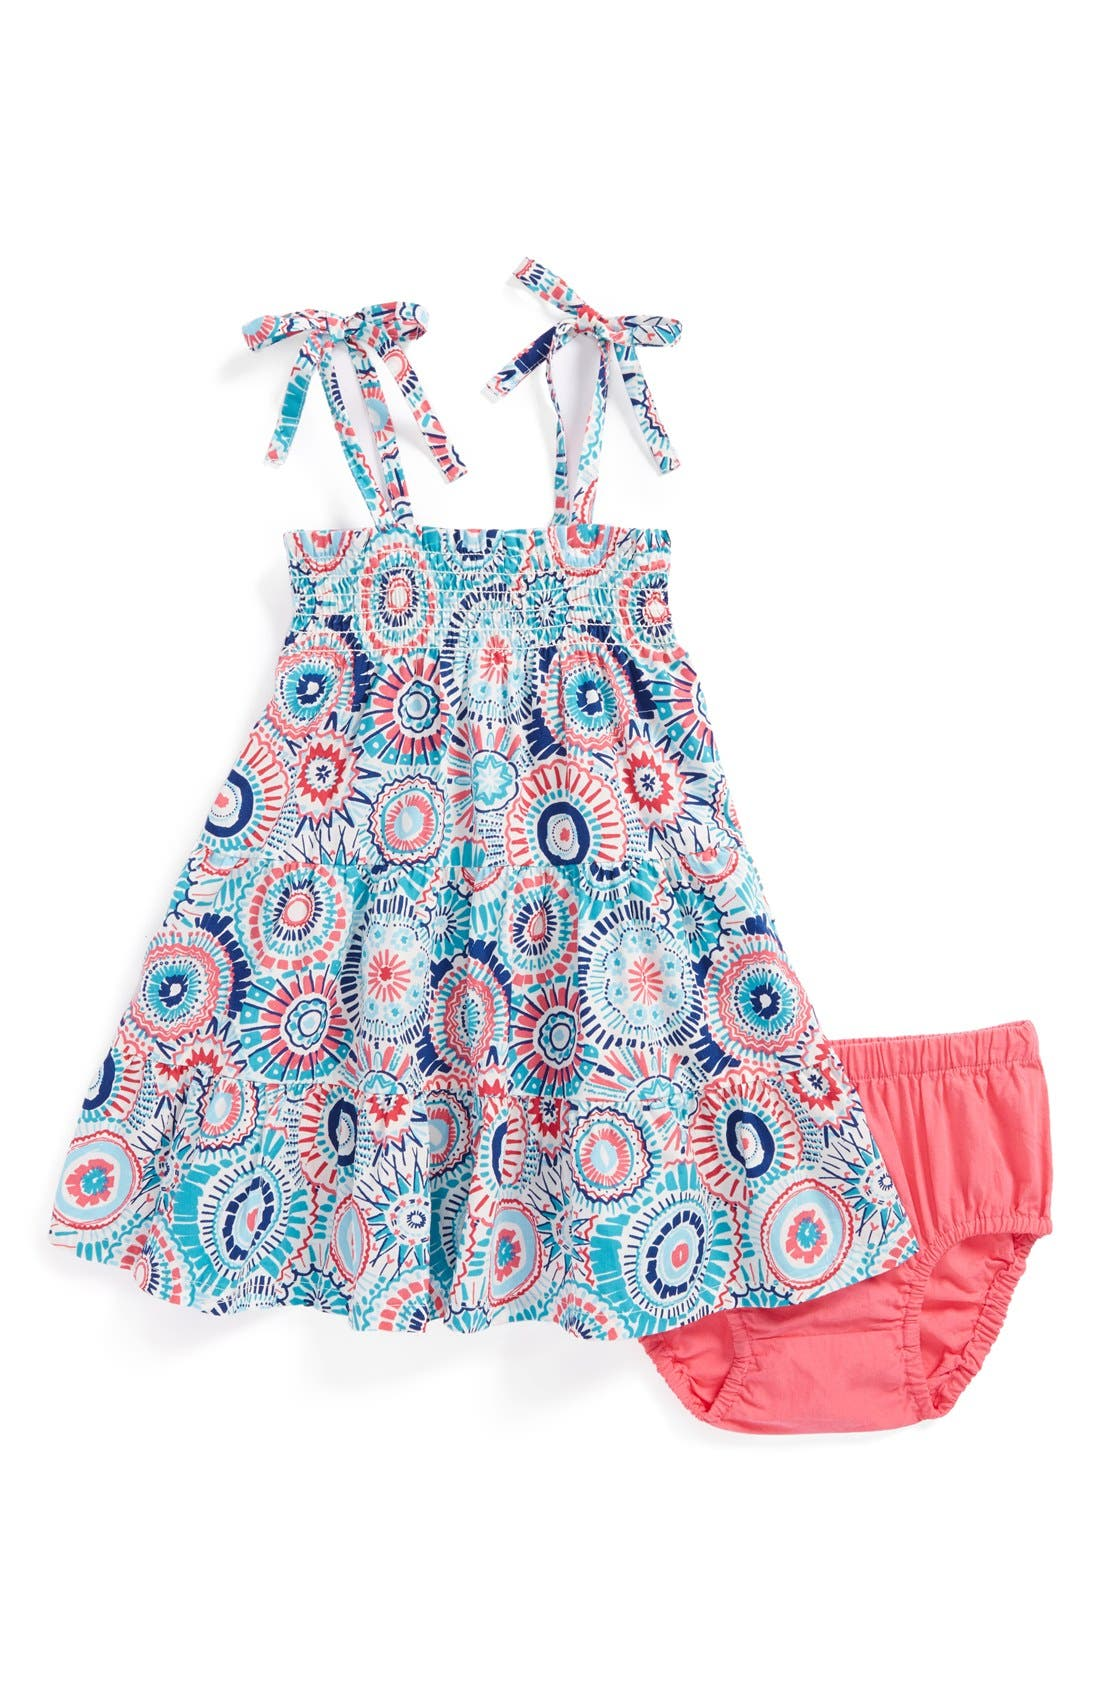 Main Image - Tea Collection 'Sea Anemone' Shoulder Tie Sundress (Baby Girls)